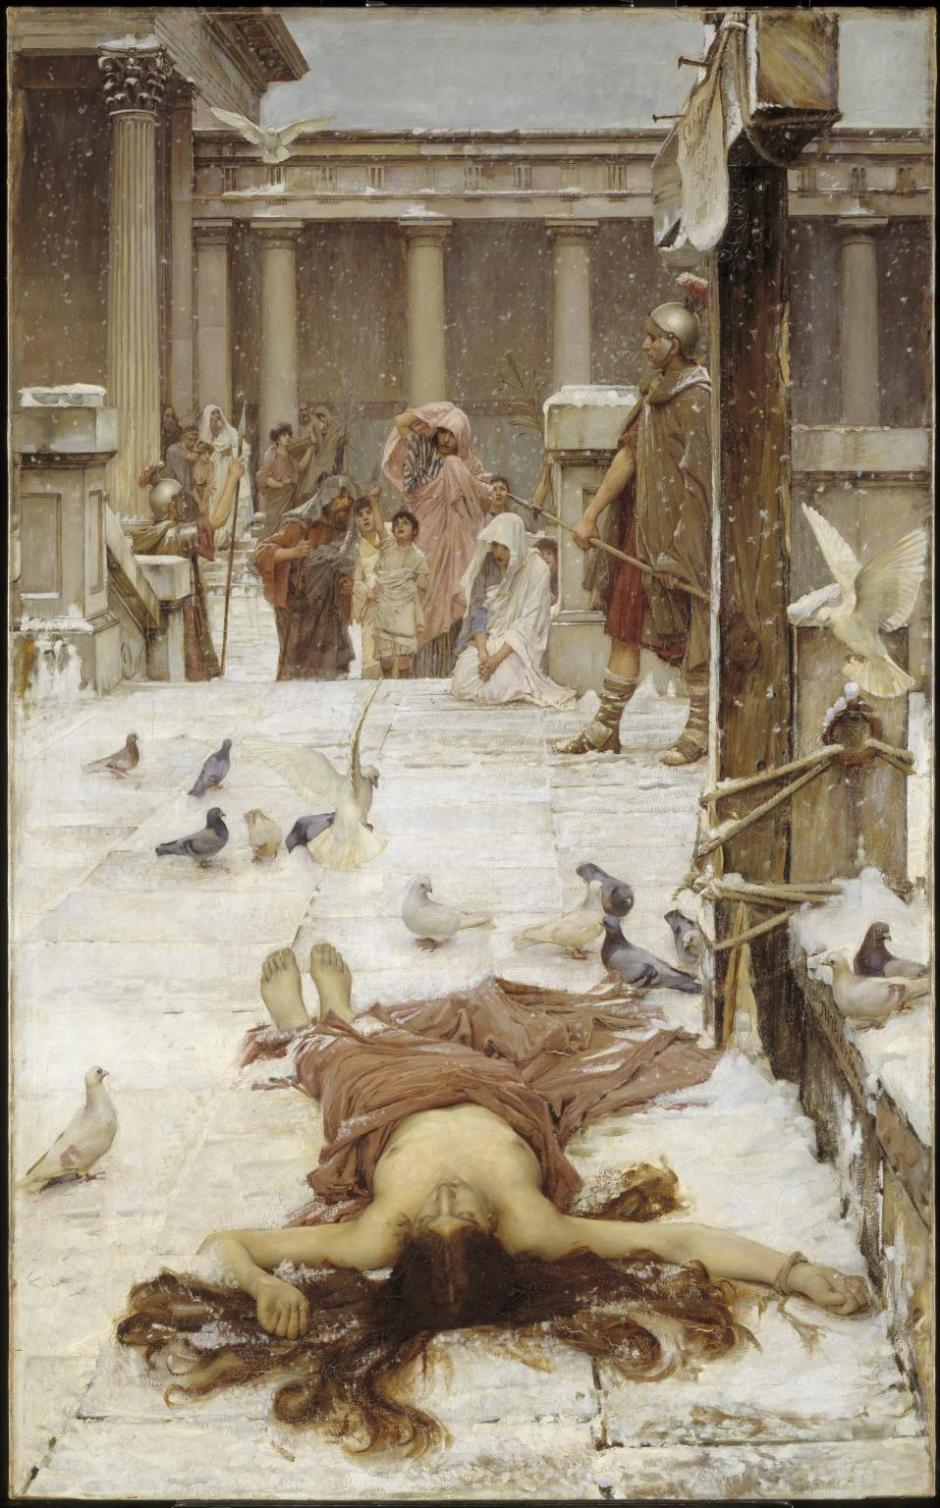 Saint Eulalia exhibited 1885 by John William Waterhouse 1849-1917